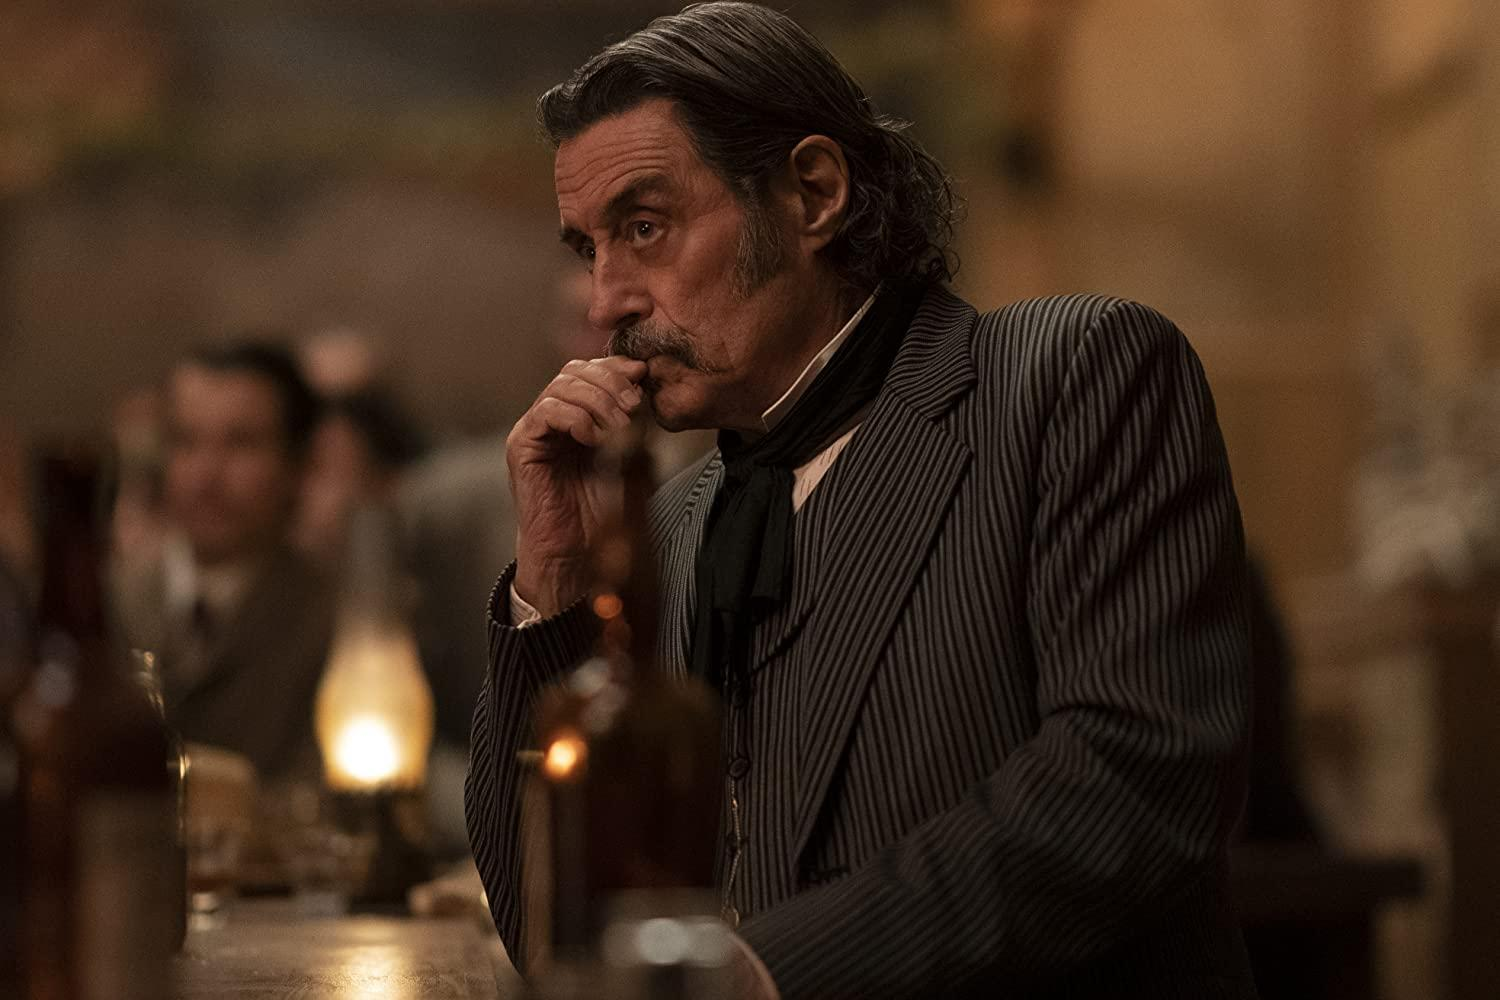 مشاهدة فيلم Deadwood: The Movie (2019) مترجم HD اون لاين